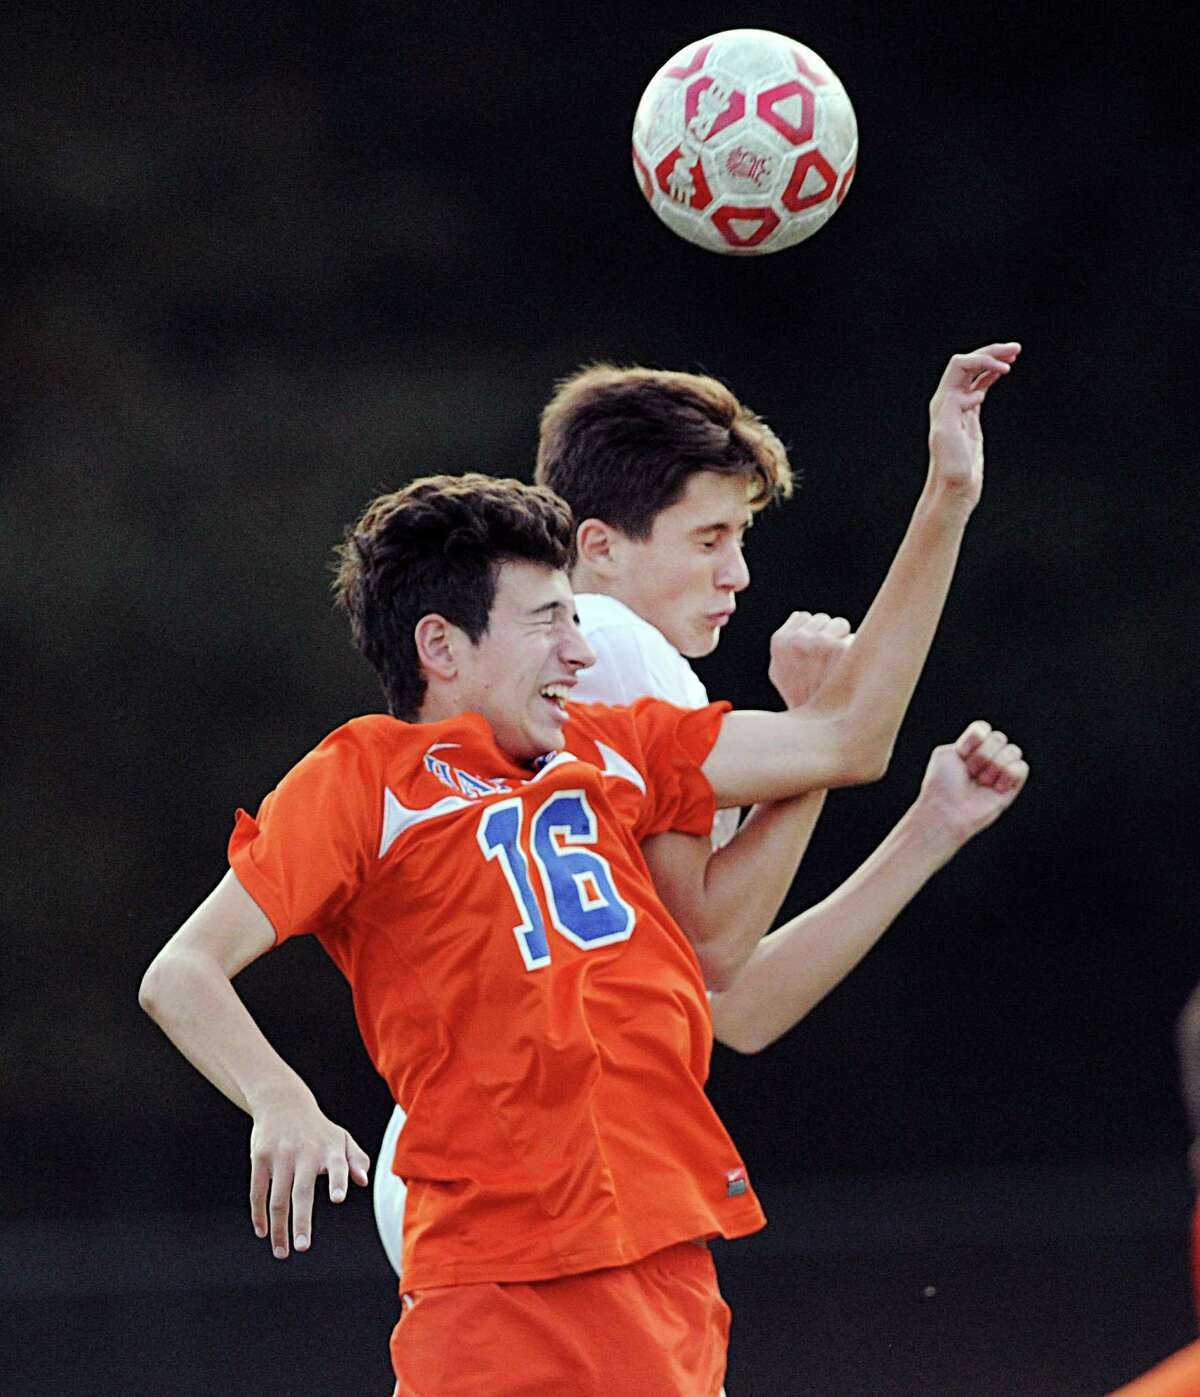 Danbury's Felipe Alves (#16), left, and Kai Lammers of Greenwich, top, go for the headers during the boys high school soccer match between Greenwich High School and Danbury High School at Cardinal Stadium in Greenwich, Conn., Tuesday night, Oct. 18, 2016. Greenwich won the match 5 - 0.